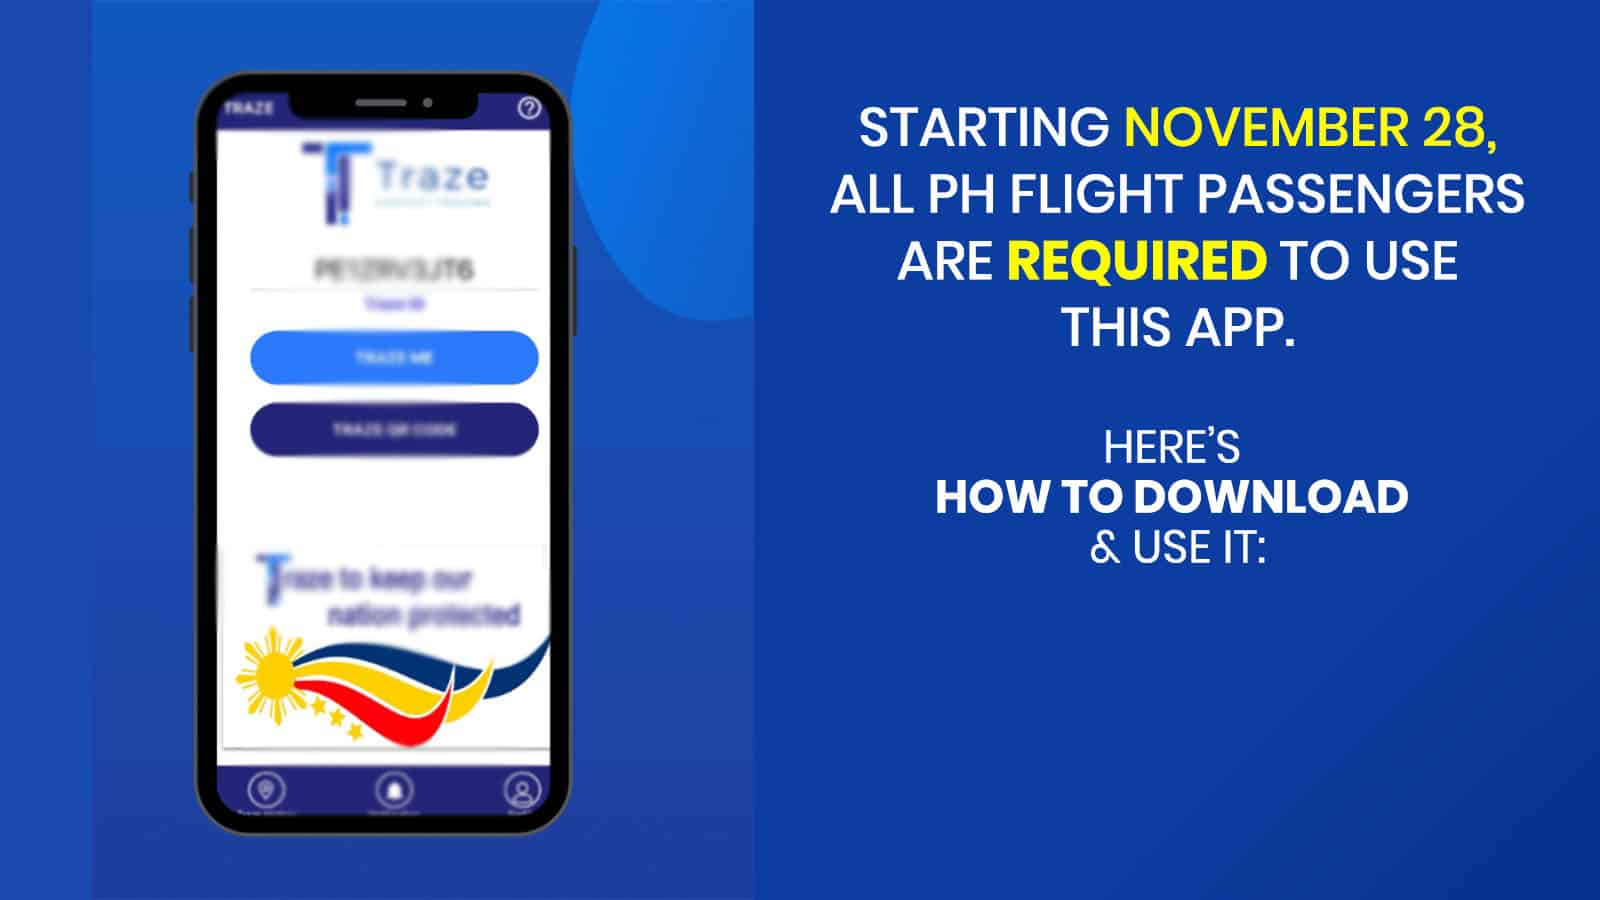 TRAZE APP: Where to Download, How to Register, How to Use at Airport